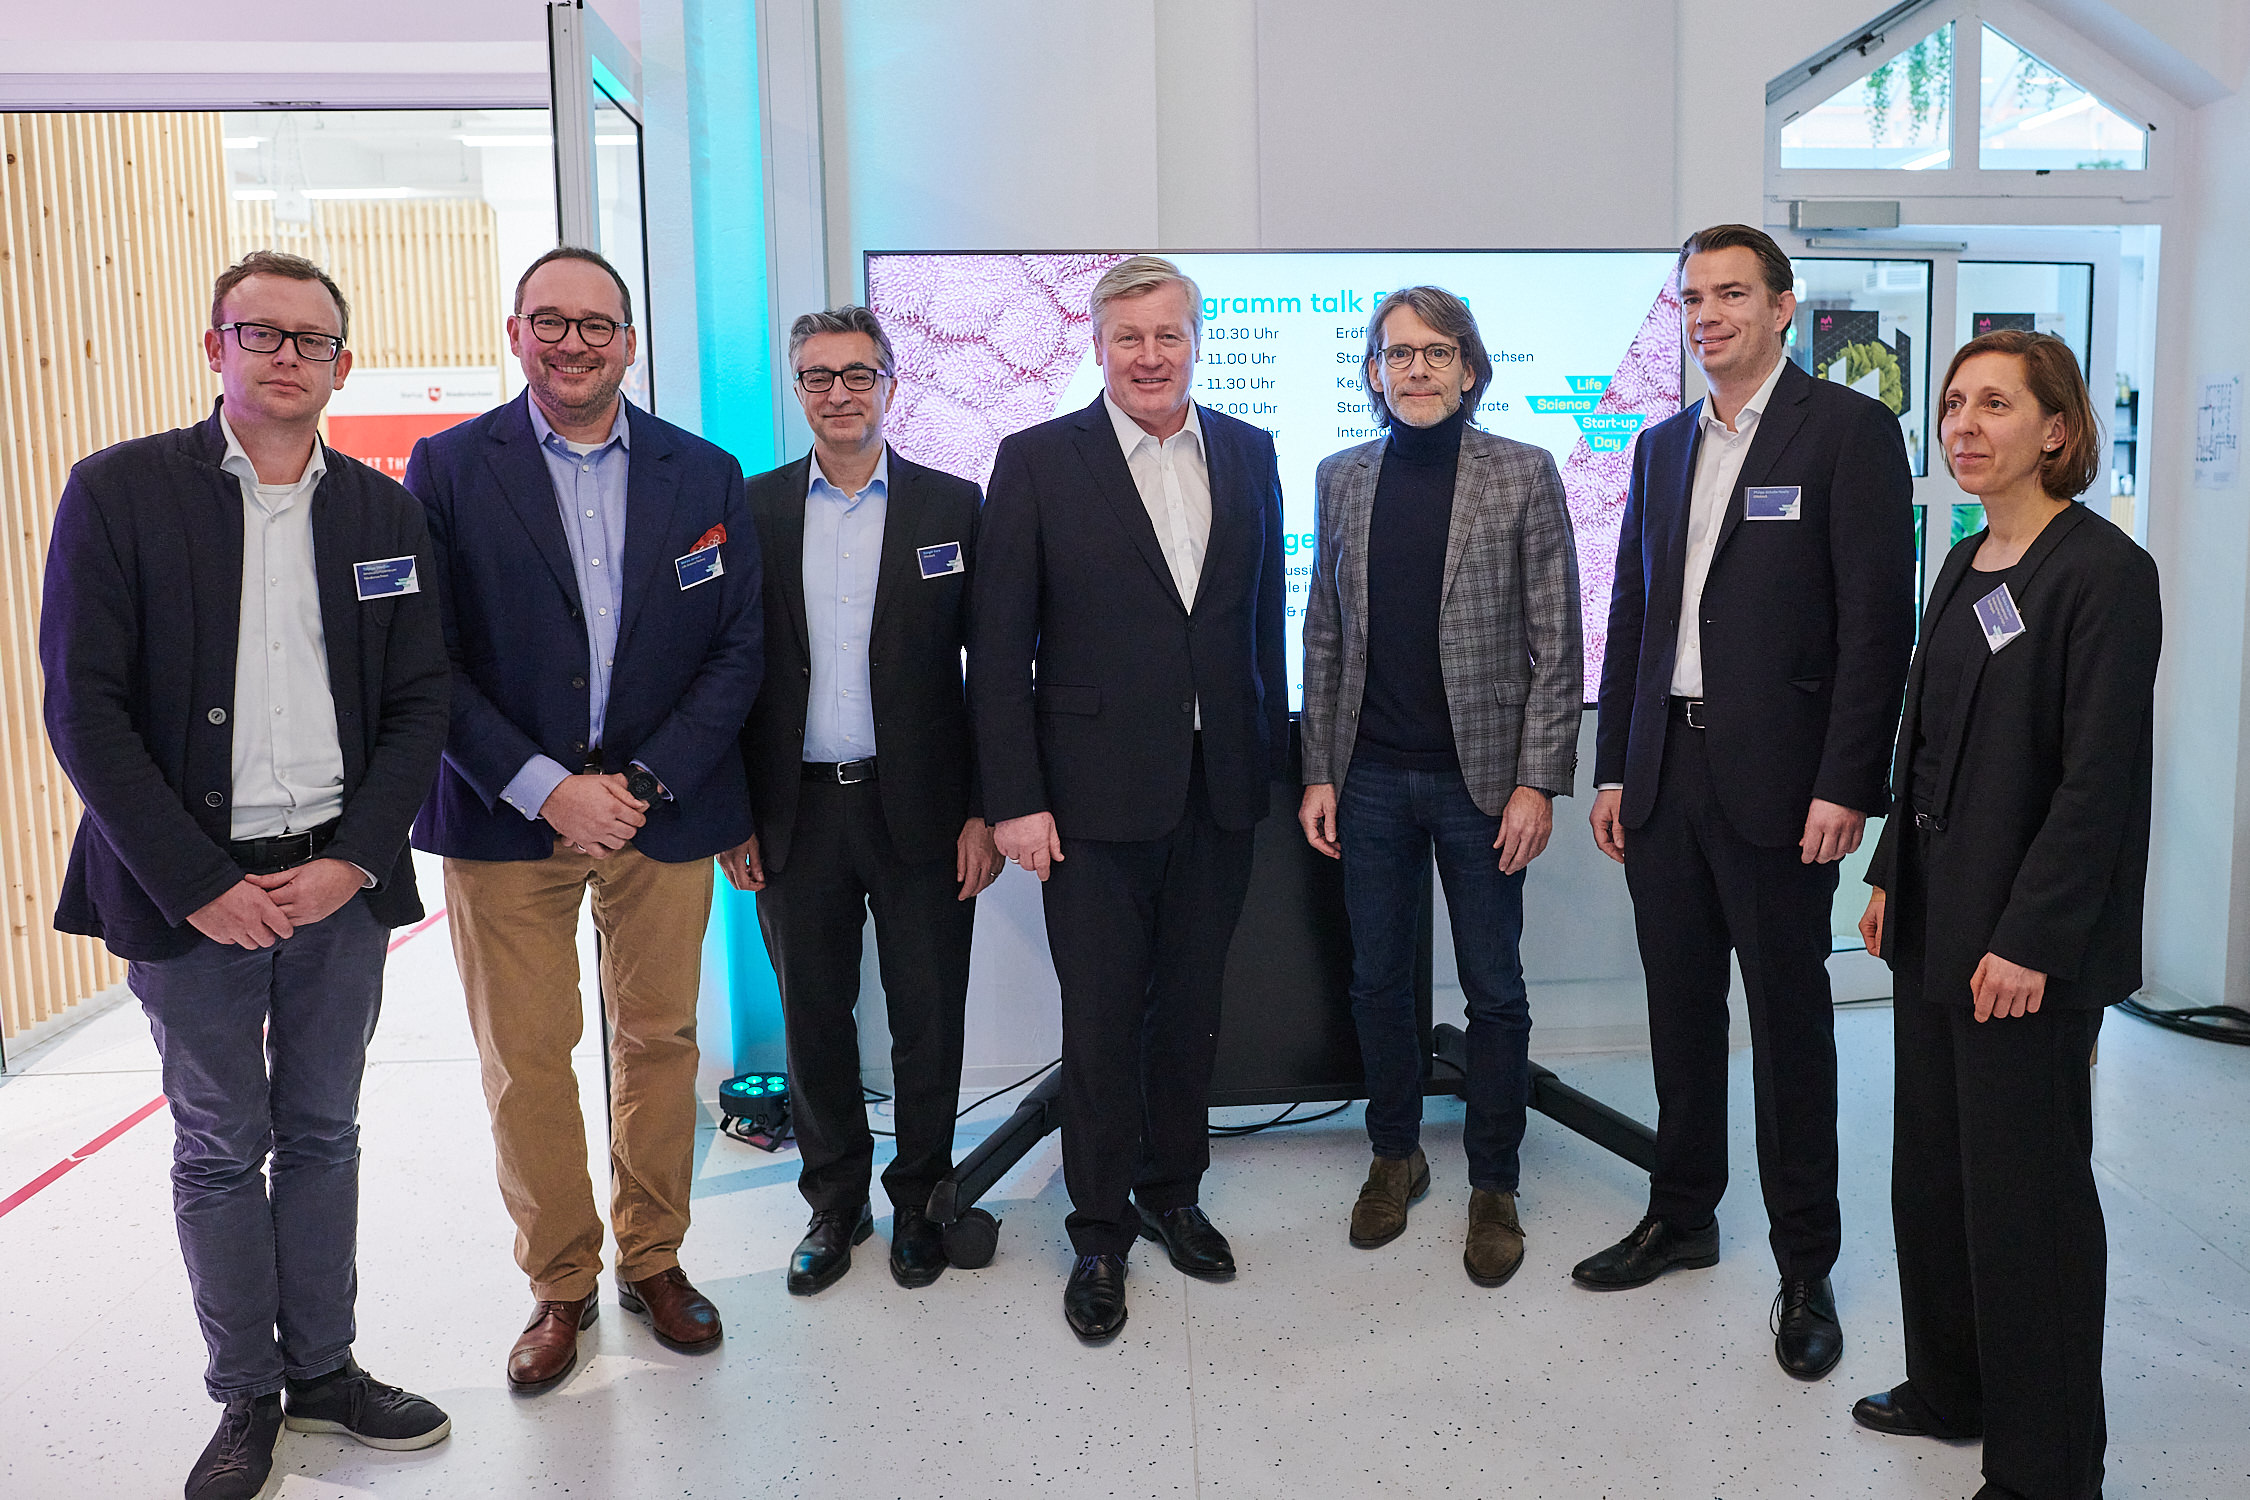 Life Science Startup Day 2020 Gruppenbild mit Althusmann, Partnern und Organisatoren